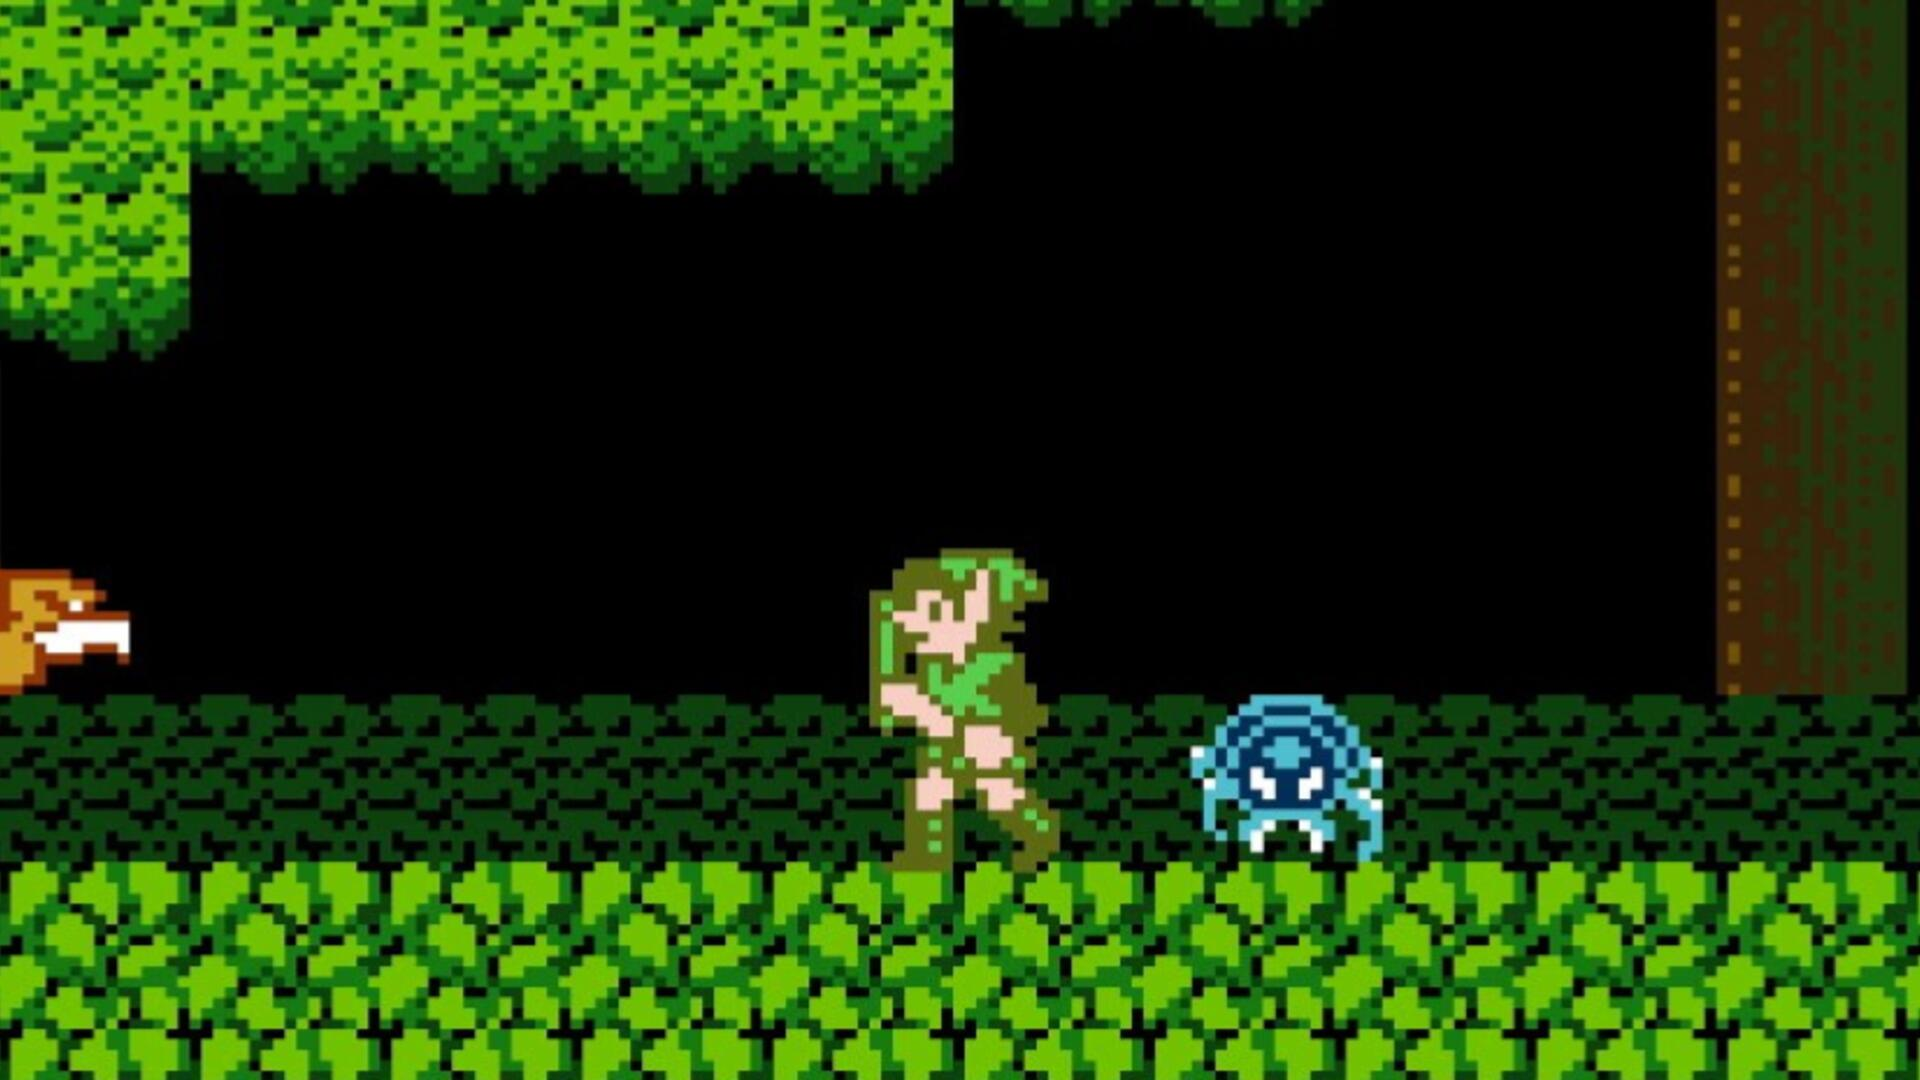 Zelda 2 and Blaster Master Are the Two NES Games on the Switch This Month, but Another Is Japan-Only